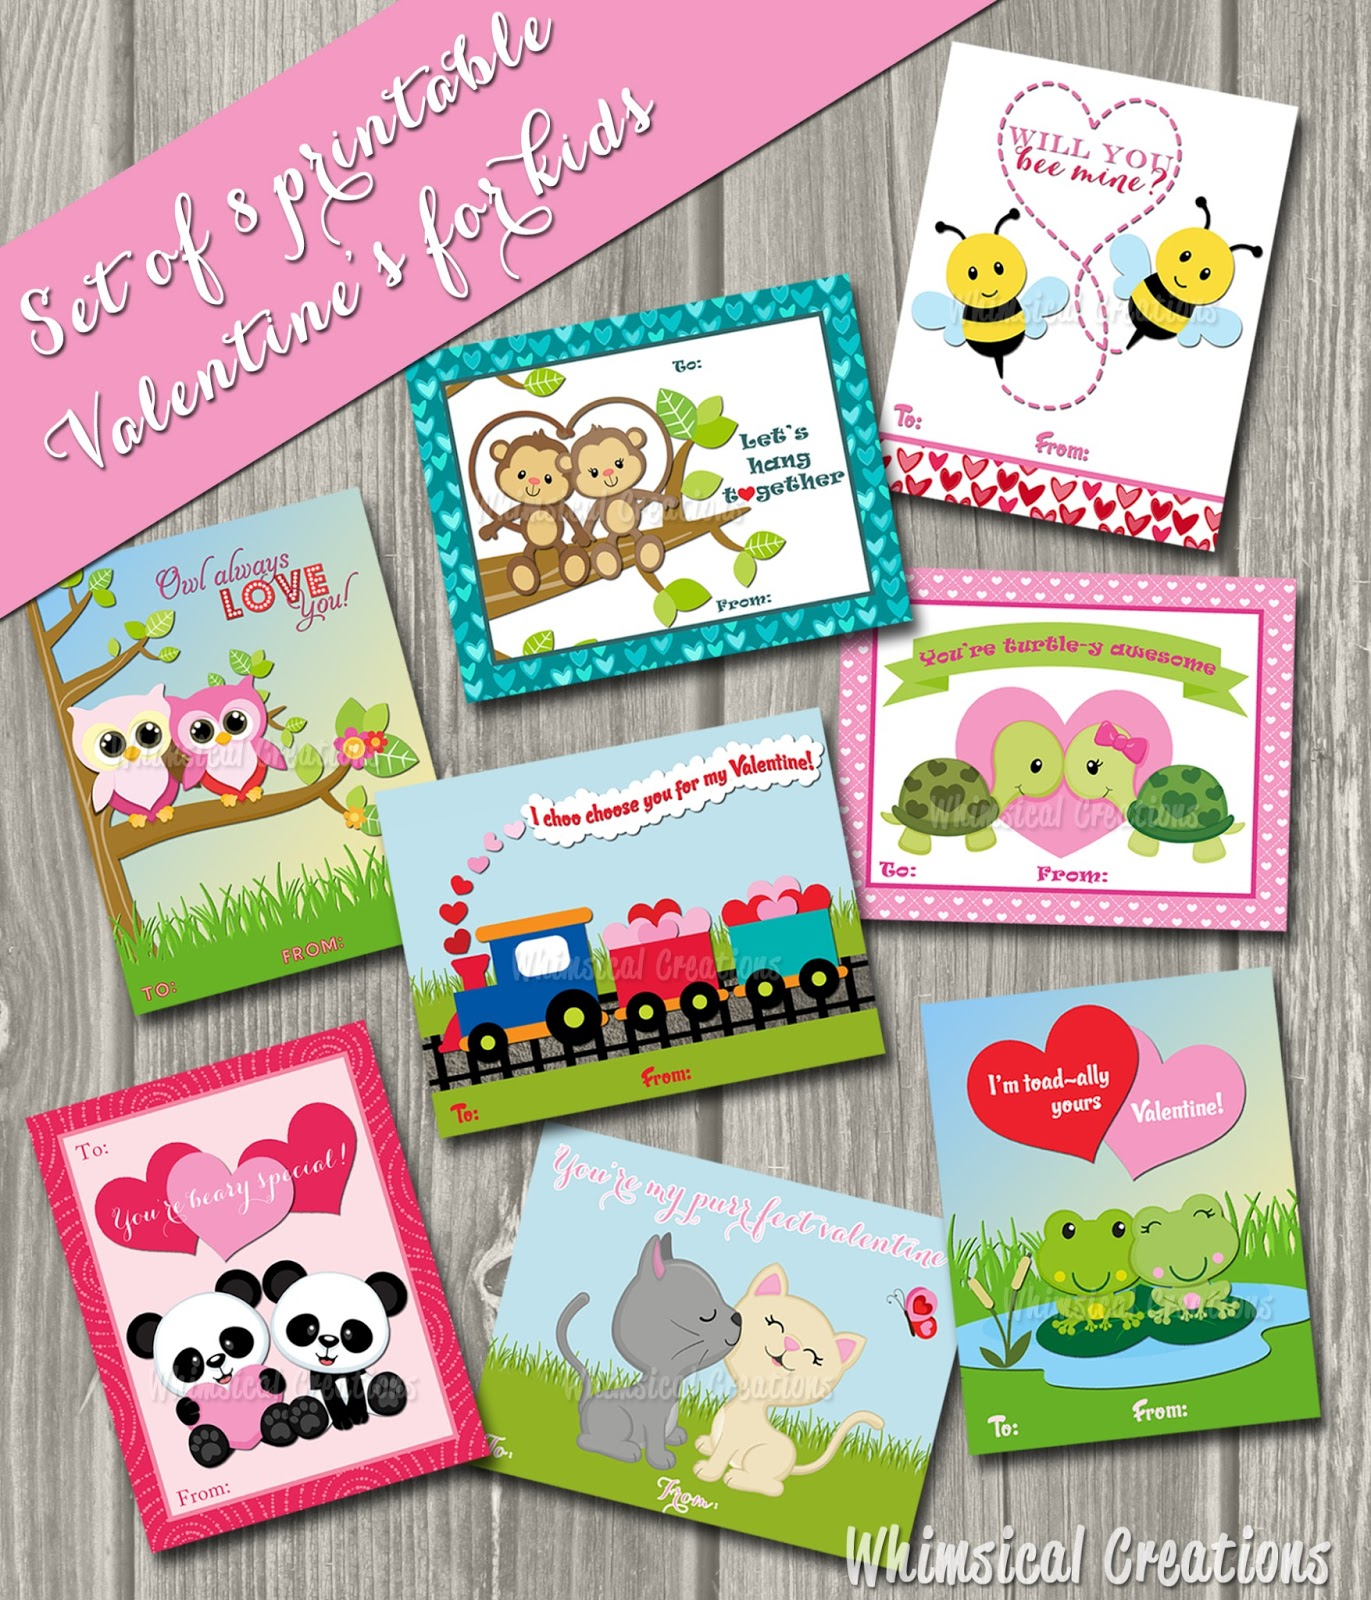 This is a picture of Impeccable Printable Valentine Cards for Kids